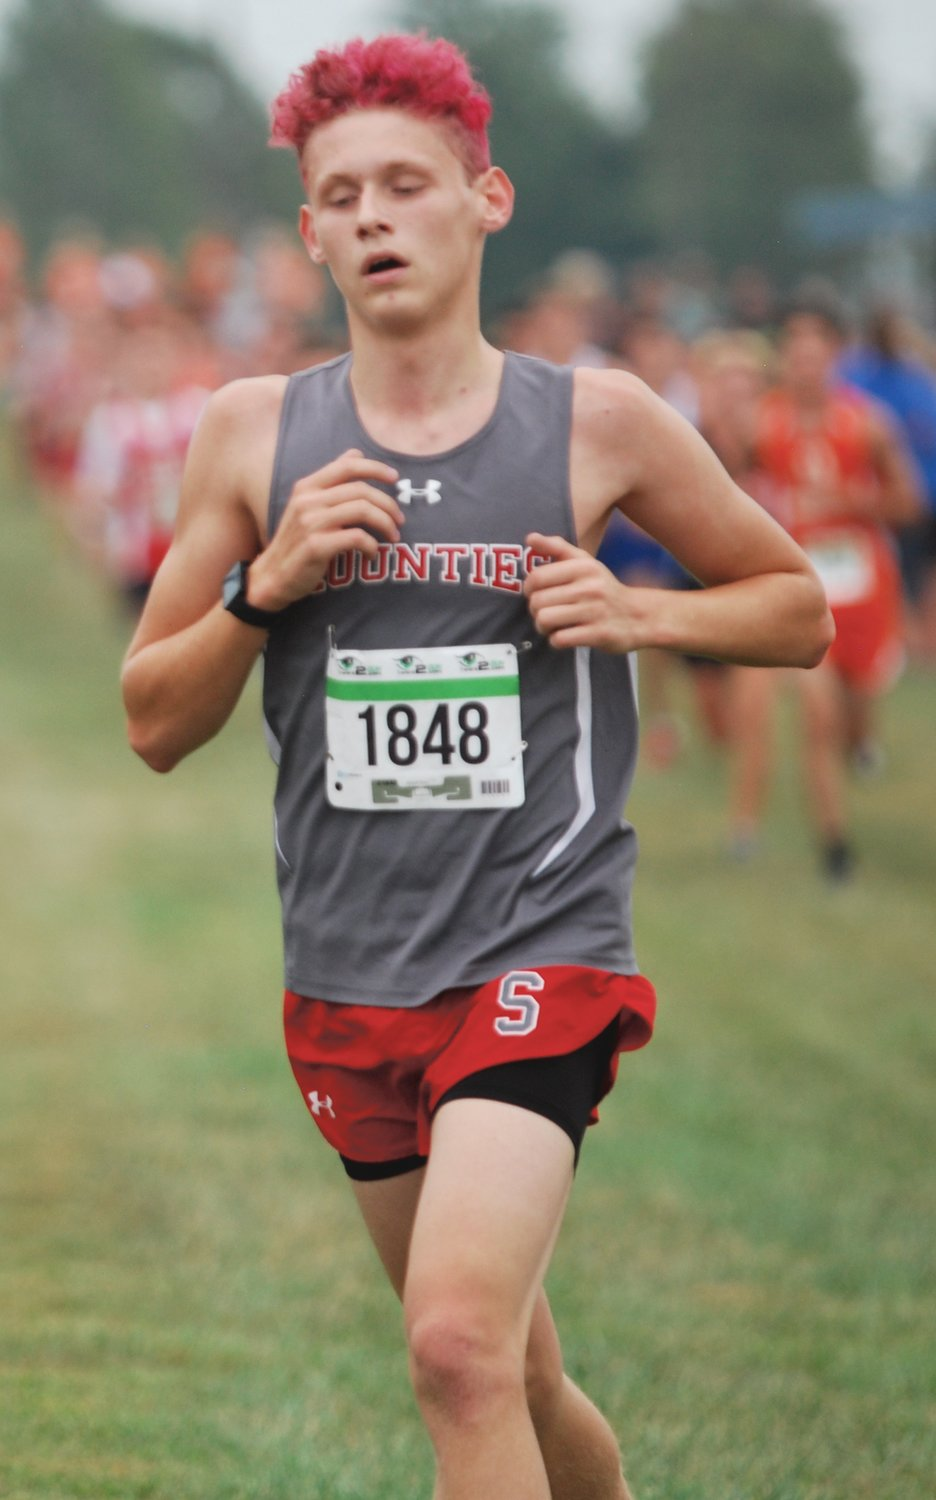 Southmont's Aaron Evans led the Mounties with an 11th-place finish in 18:30 at the Charger Classic.